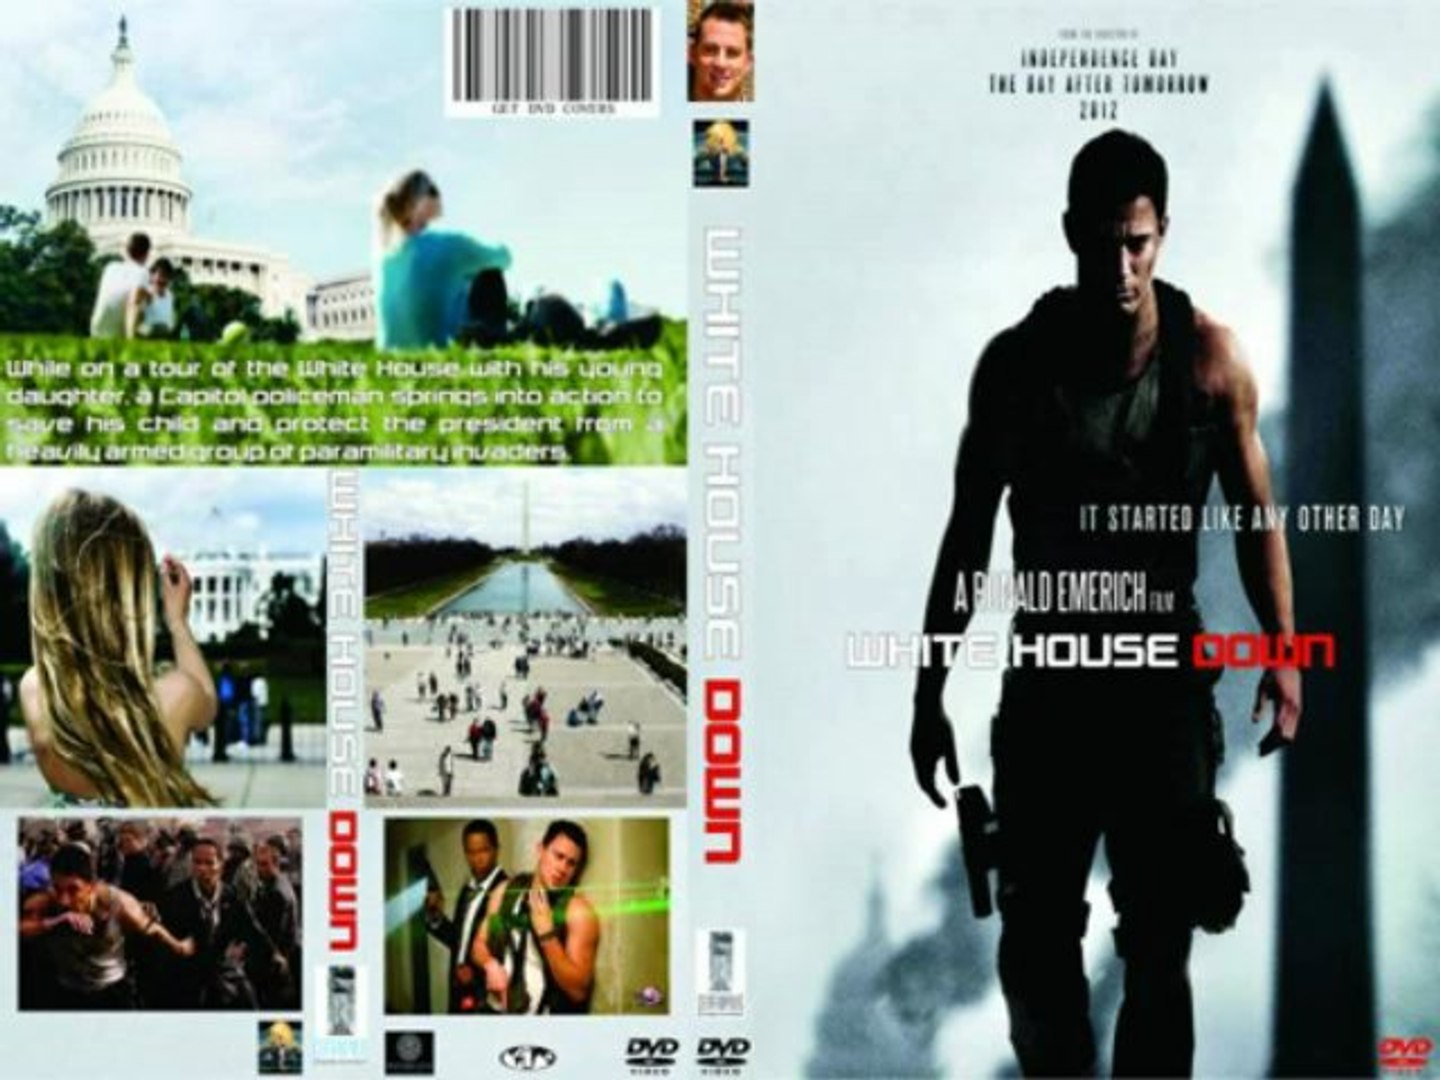 ^_^  White House Down Complete Movie Online ++ FREE Movie+++ High Definition [watch movie links tv]